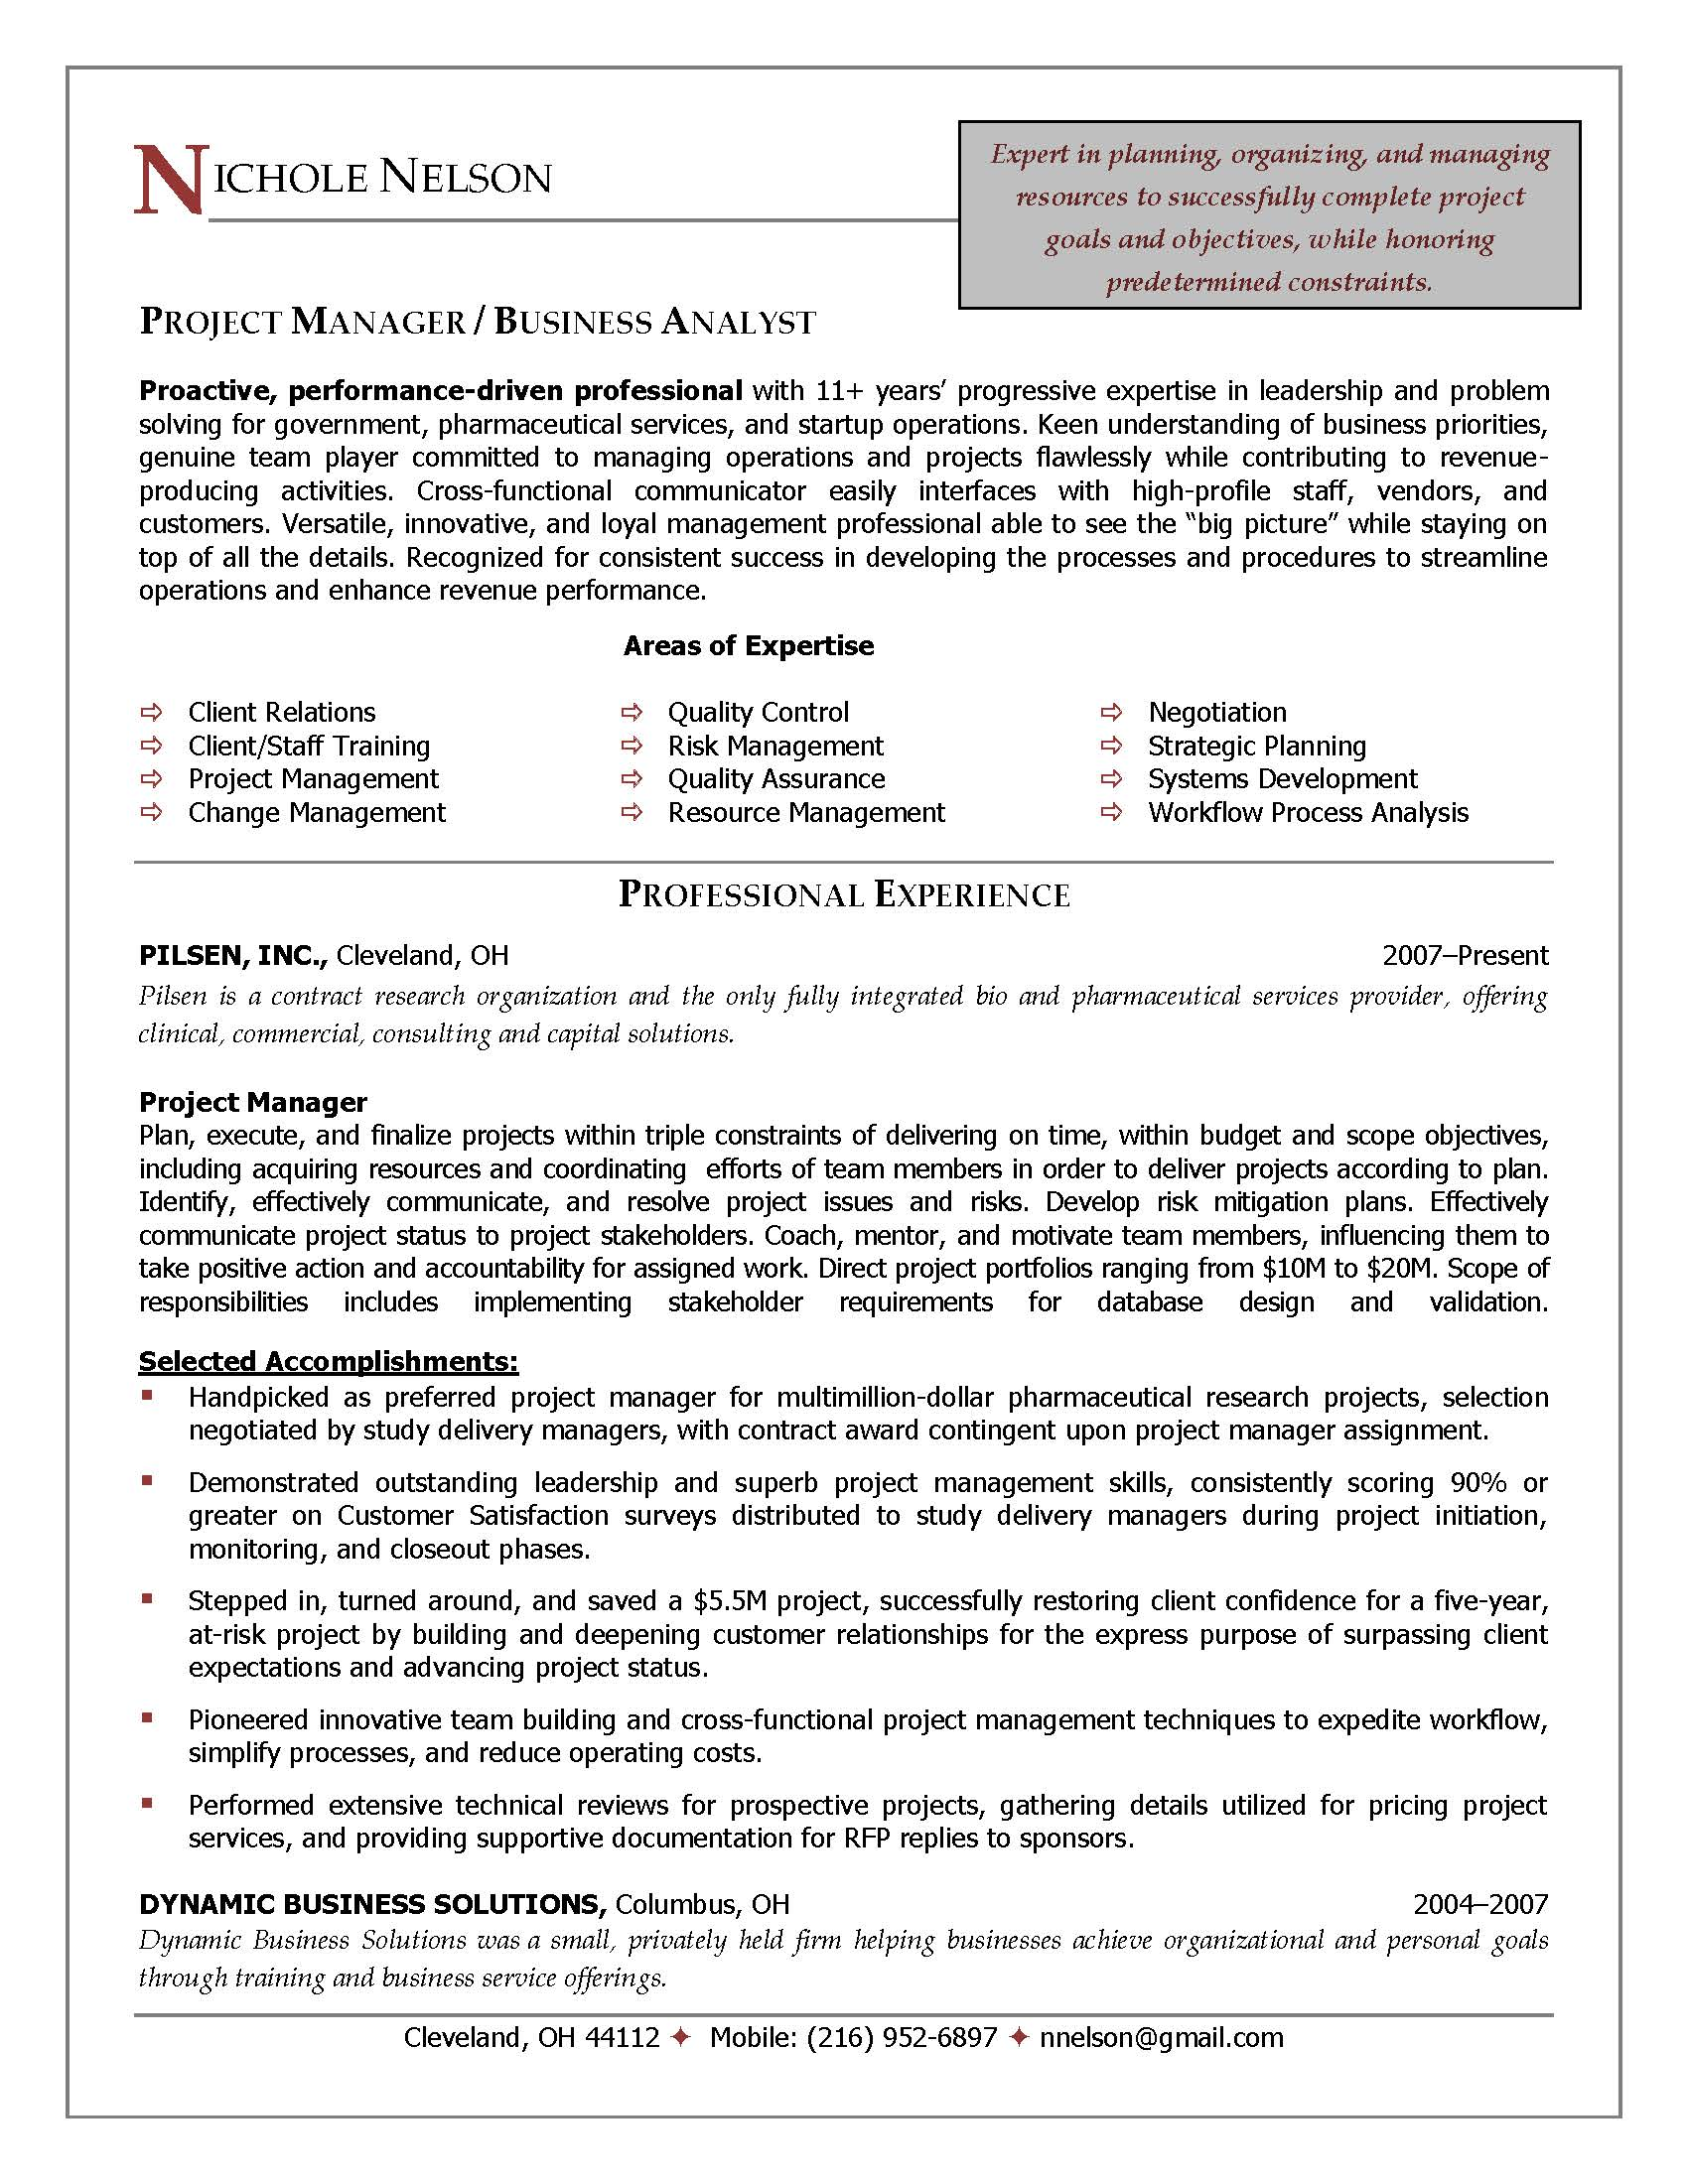 Project Manager Resume Sample, Provided By Elite Resume Writing Services  It Management Resume Examples